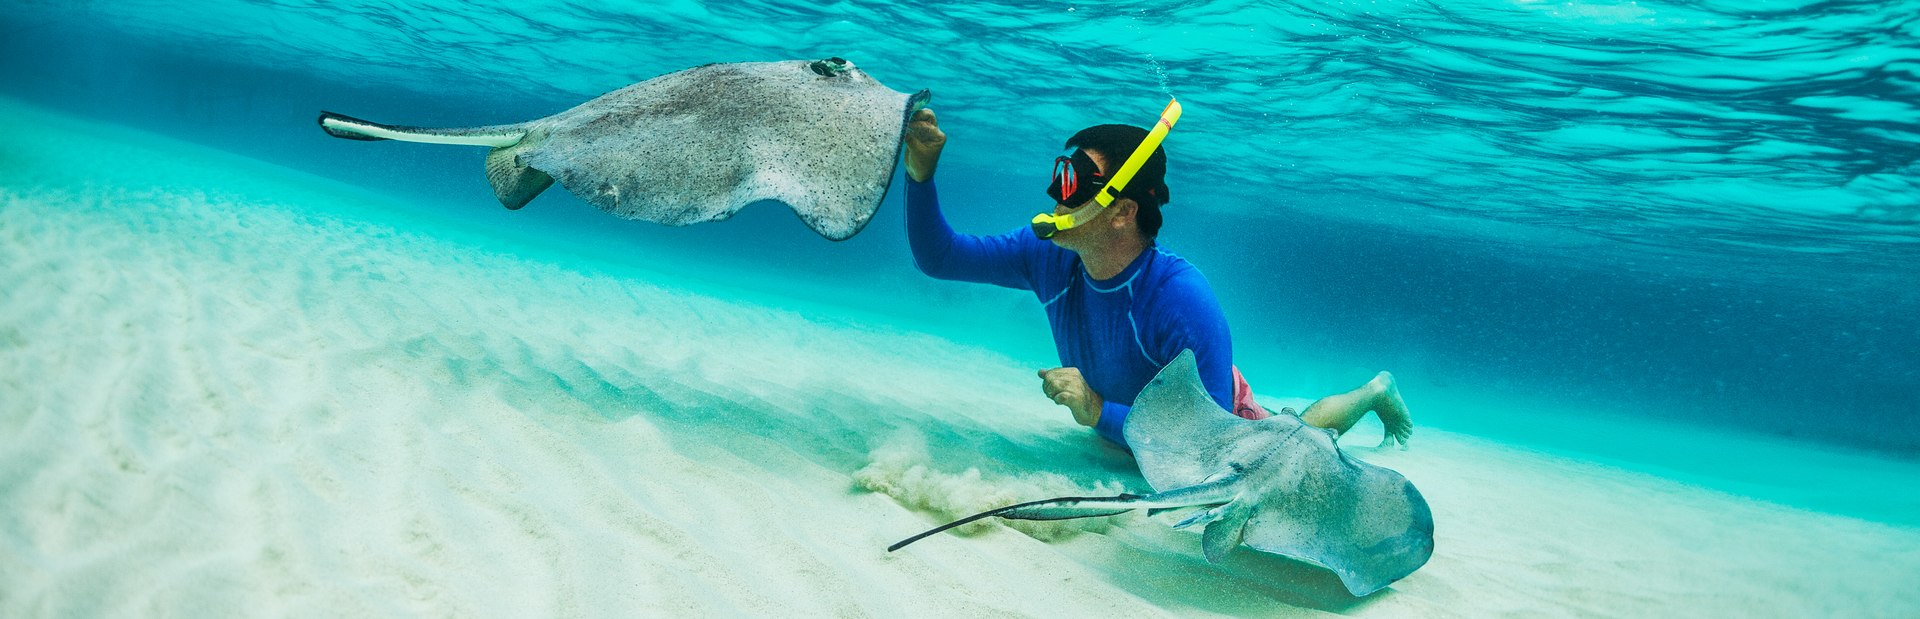 Things to see & do in the Caribbean